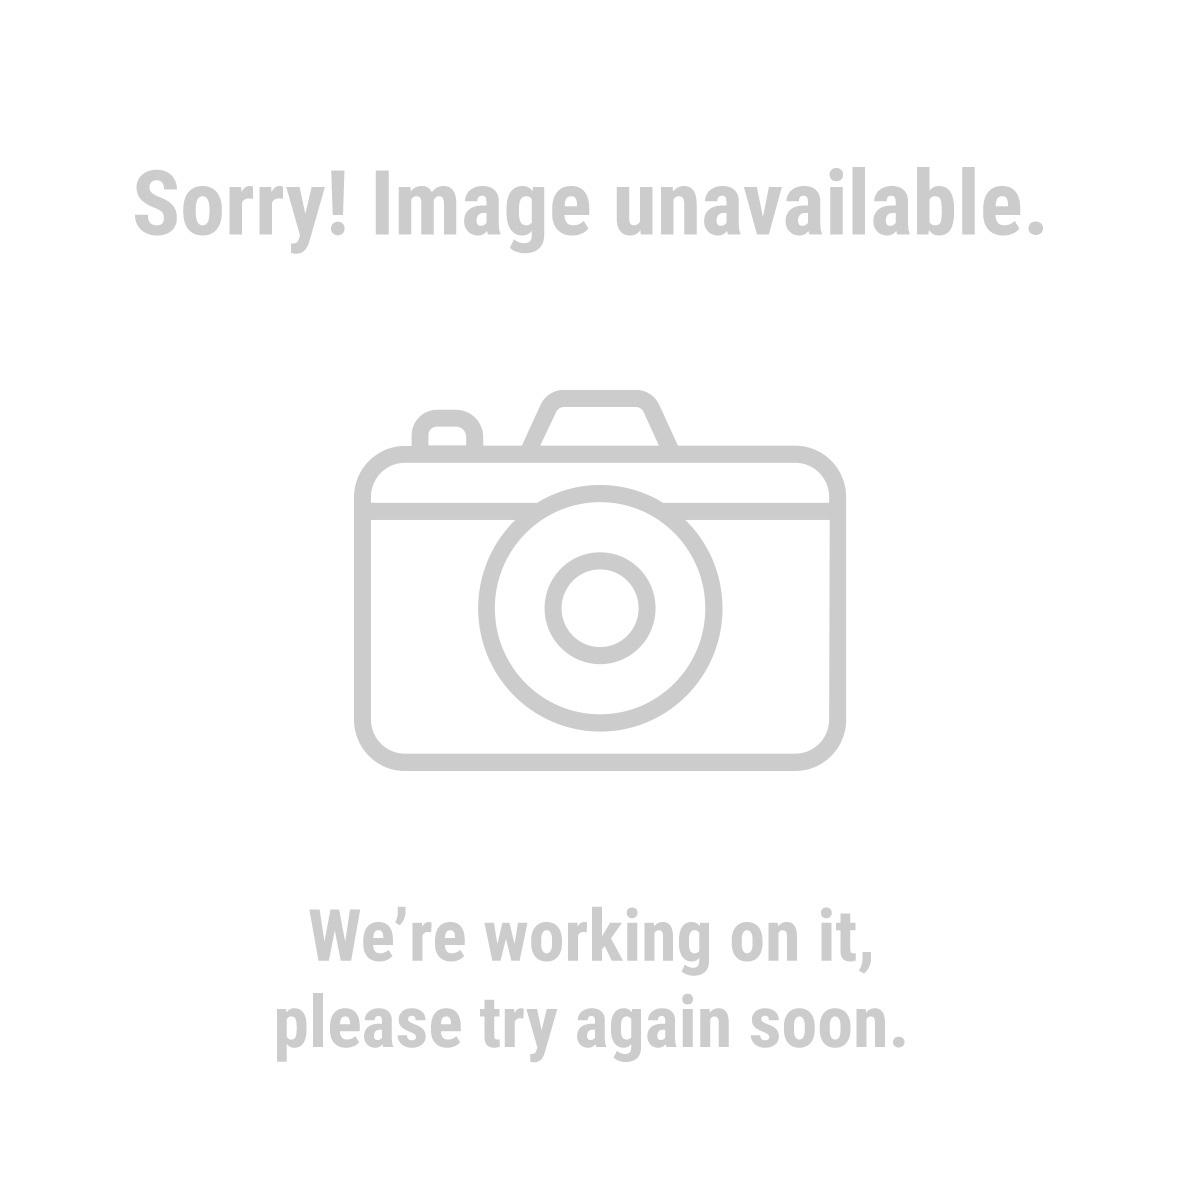 Greyhound 67090 10 Ton Hydraulic Log Splitter